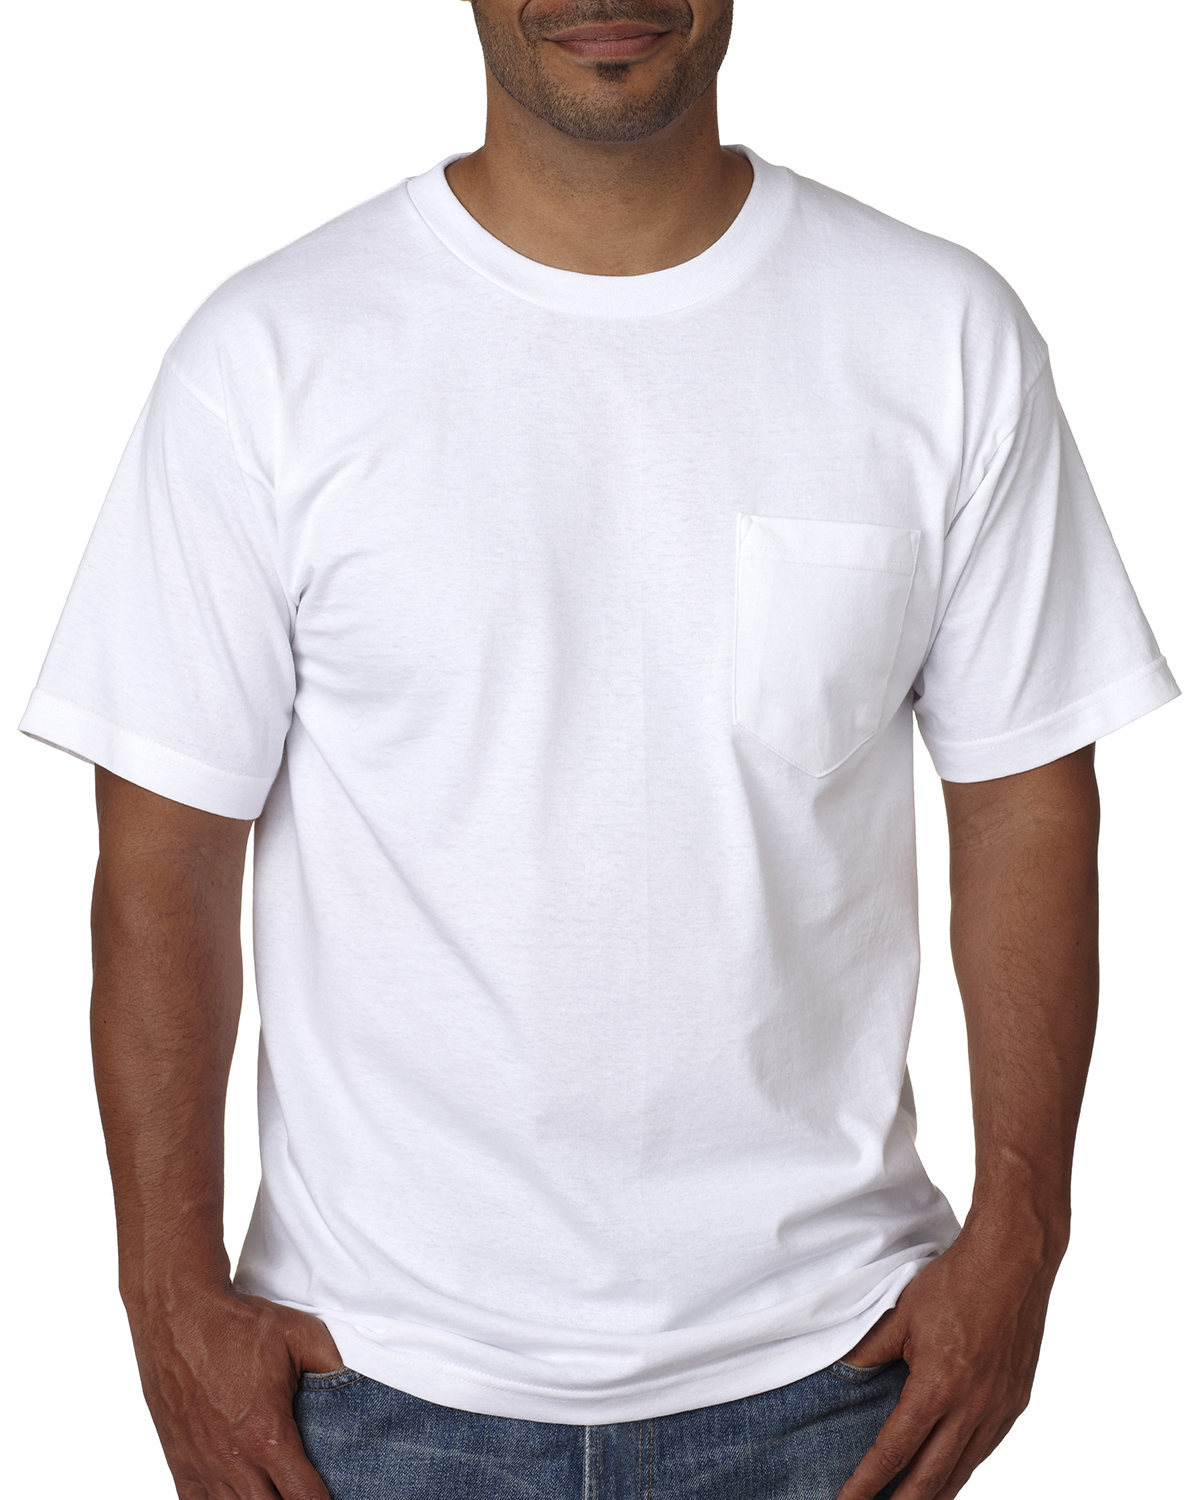 Adult Short-Sleeve Pocket Tee